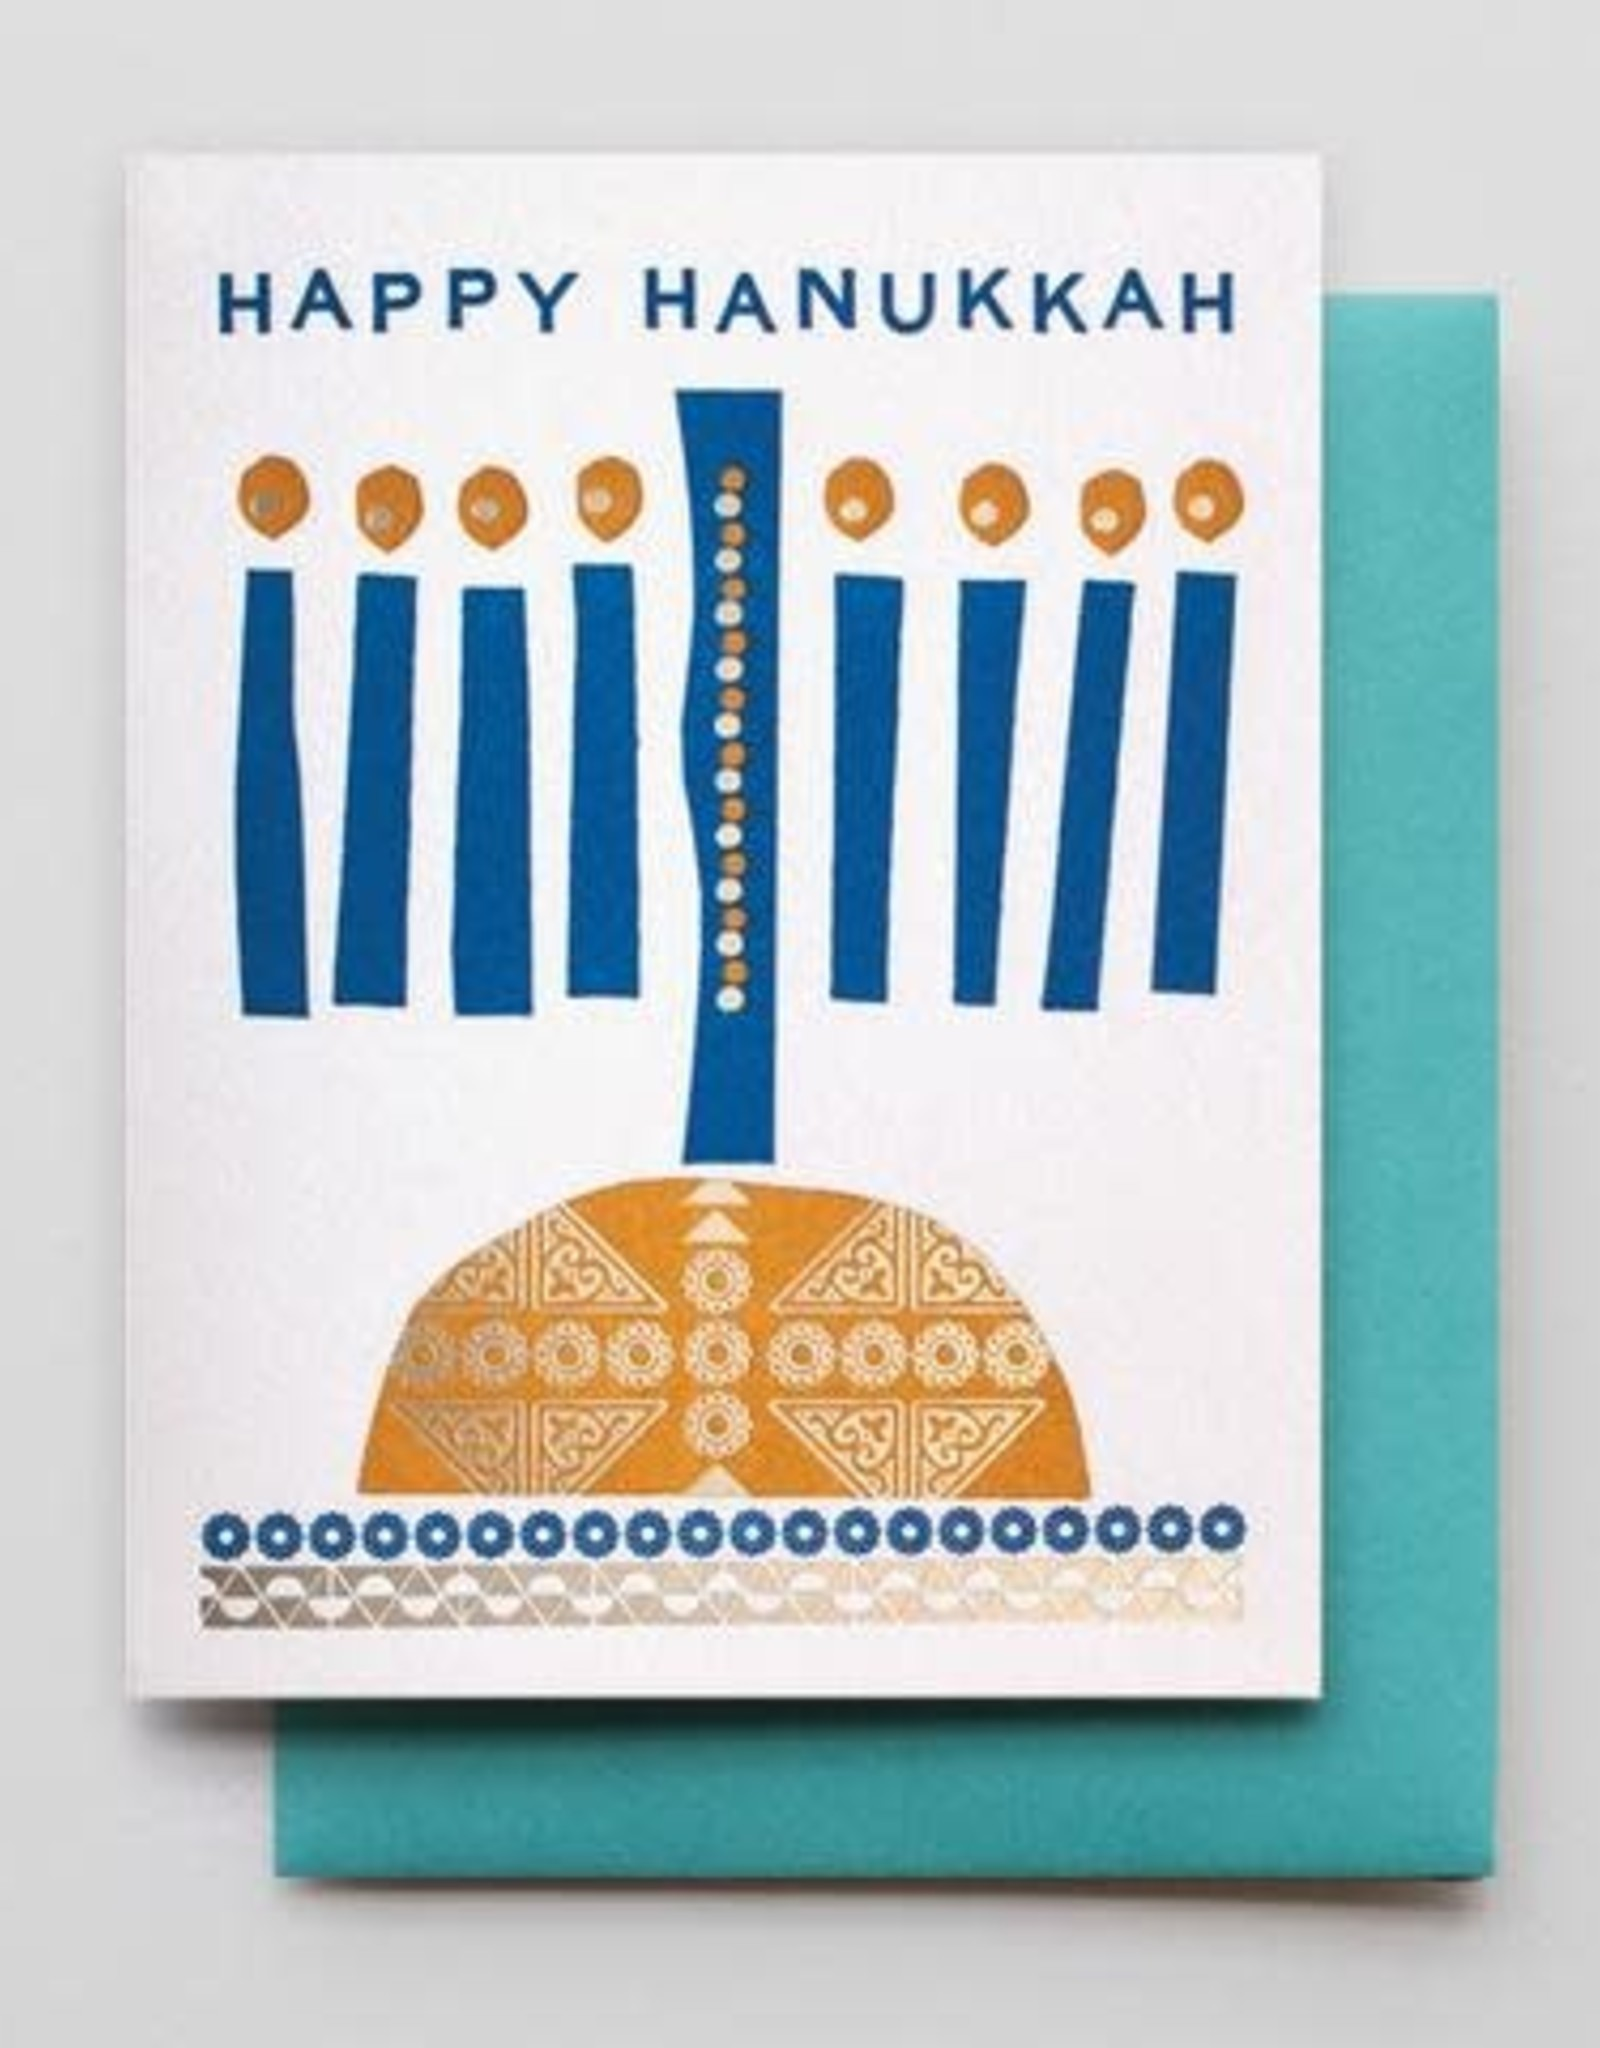 Hanukkah Candles Greeting Card